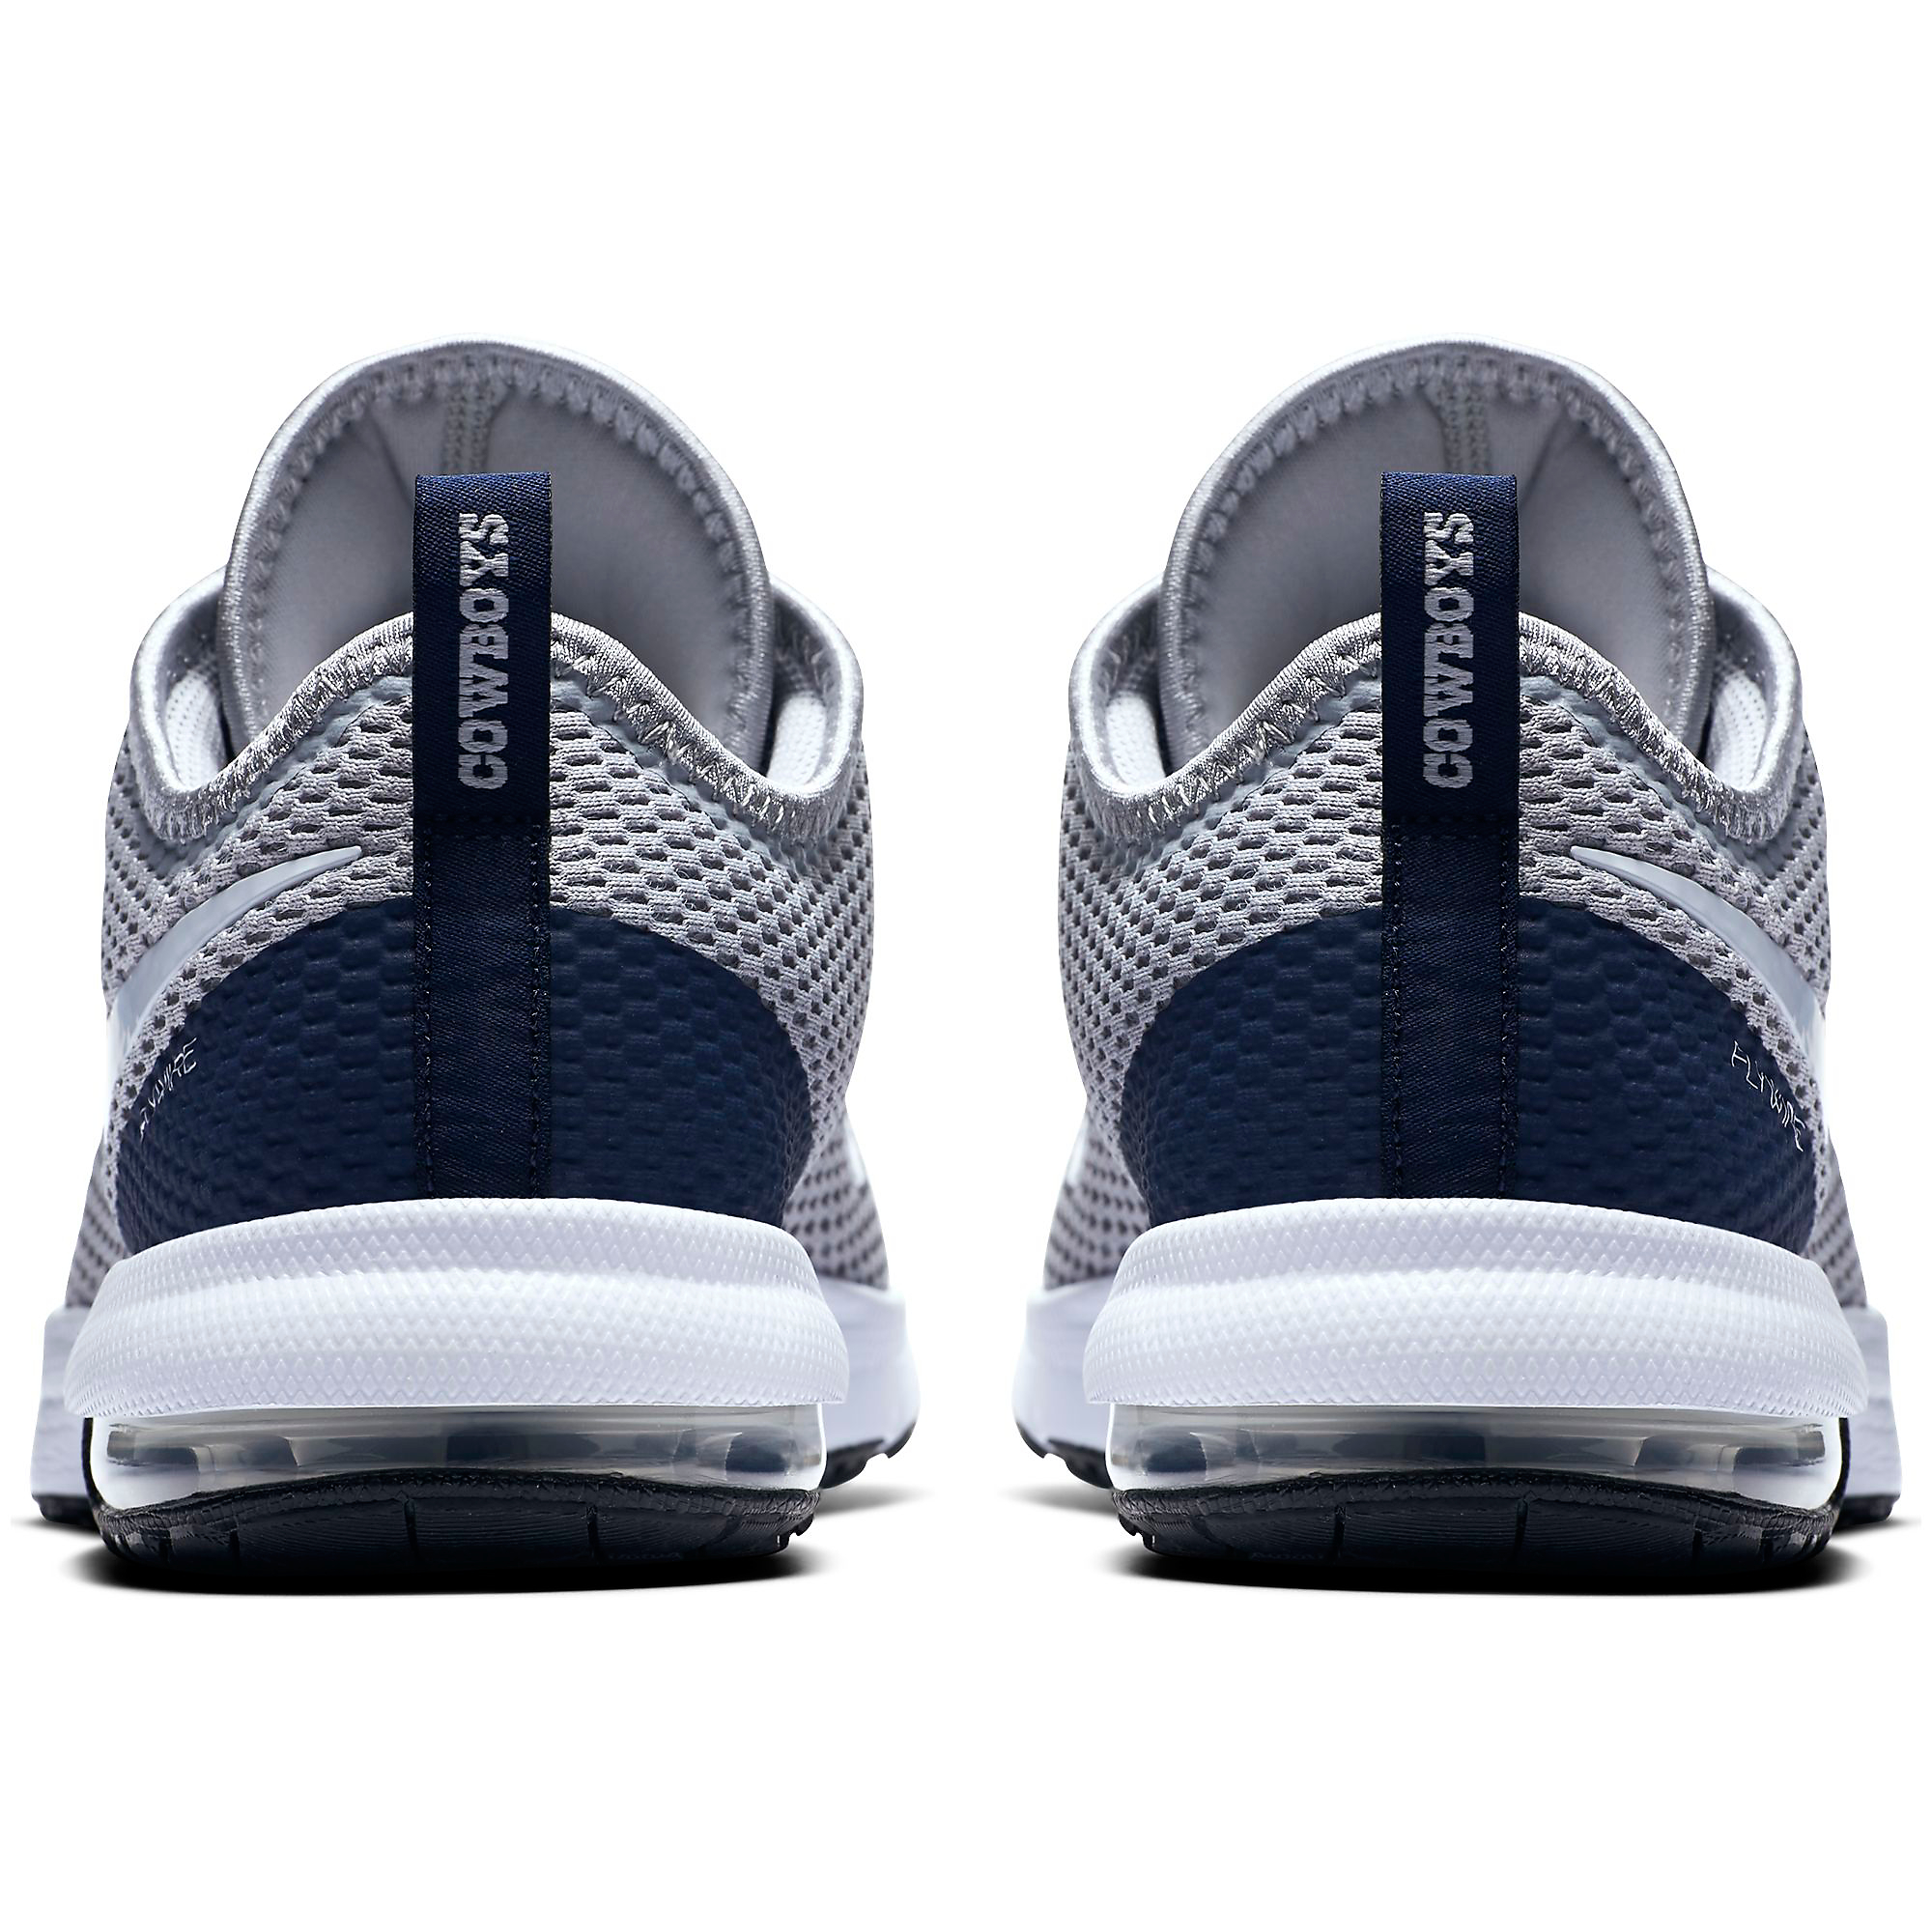 ... main container 6a671 949f3  authentic dallas cowboys mens nike air max  typha 2 training shoe 4fb96 27d55 79dfd7f69